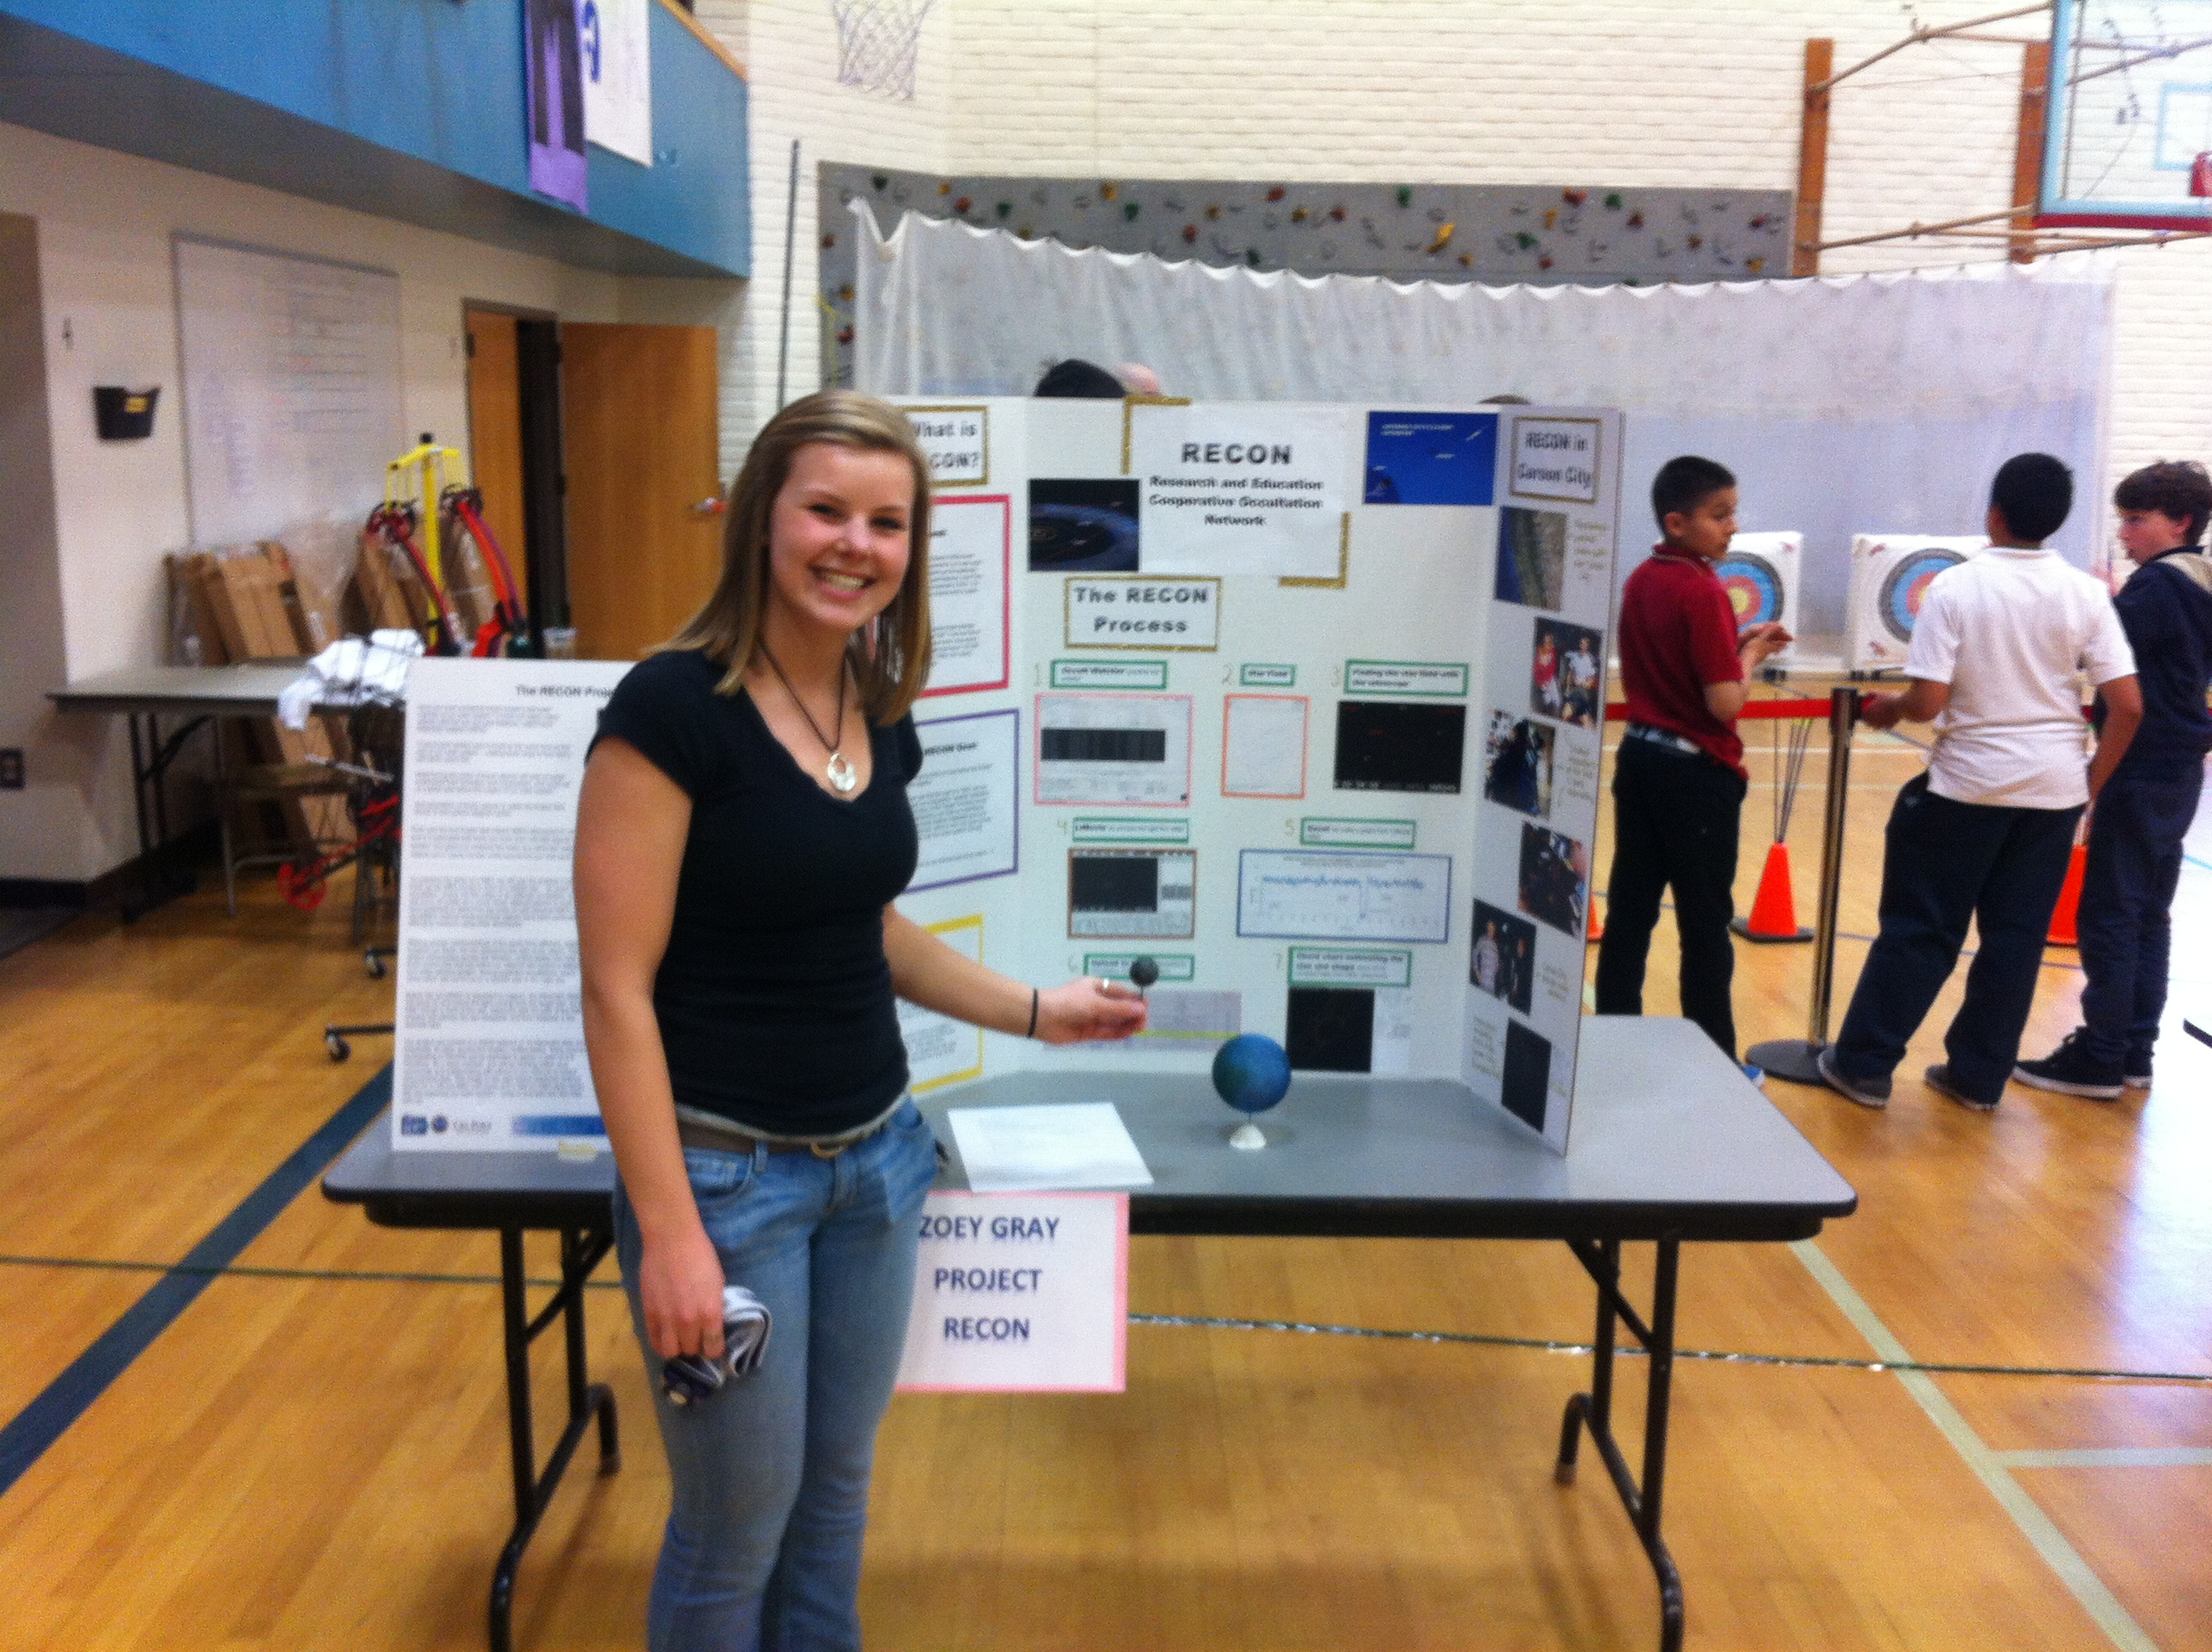 Carson High Senior making a presentation of Project RECON at Eagle Valley Tech-Night, March 2014